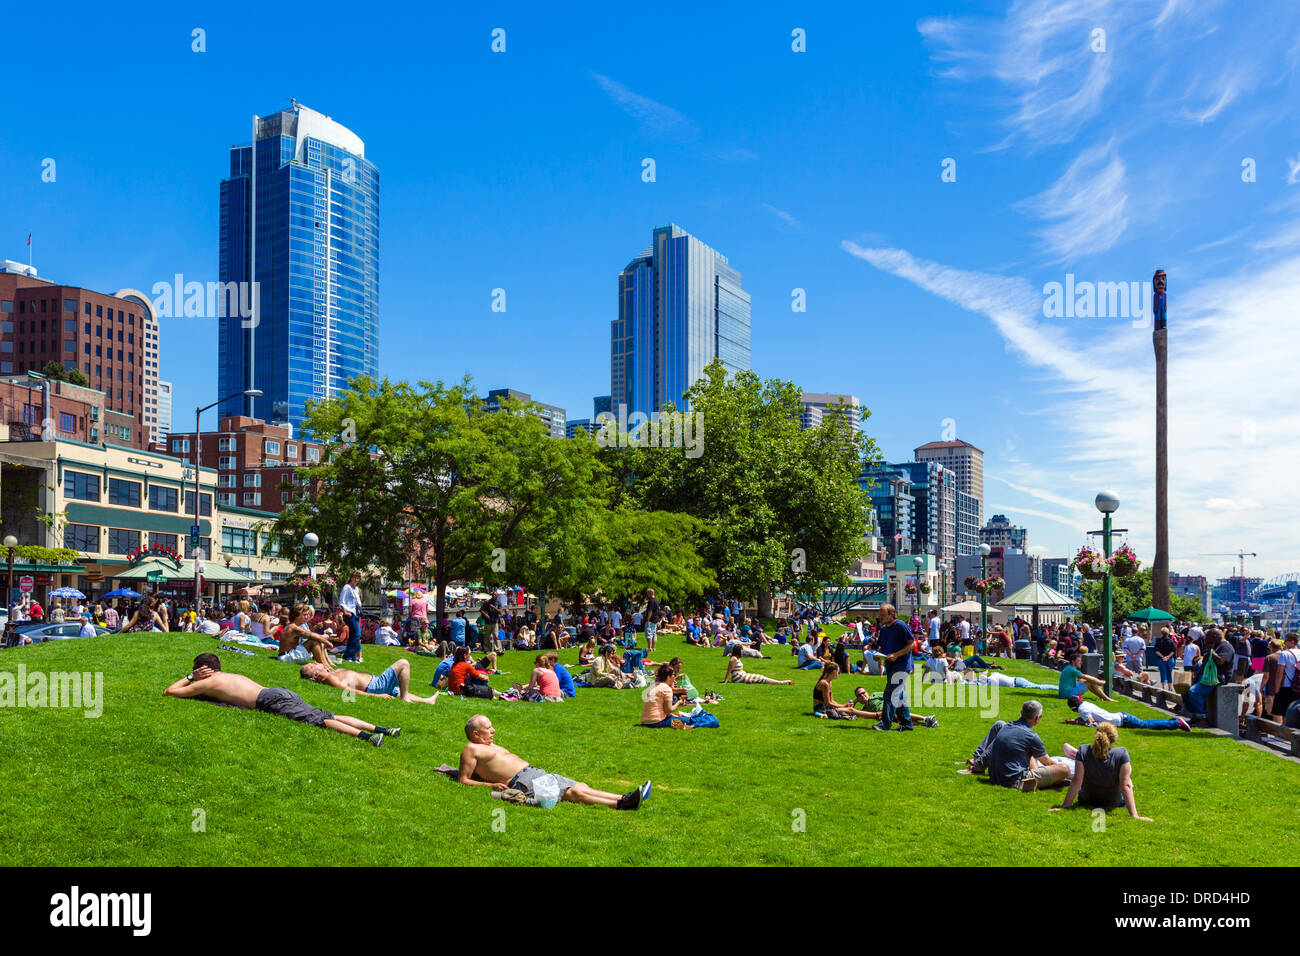 People sunbathing in Victor Steinbrueck Park in front of the downtown skyline, Seattle, Washington, USA - Stock Image